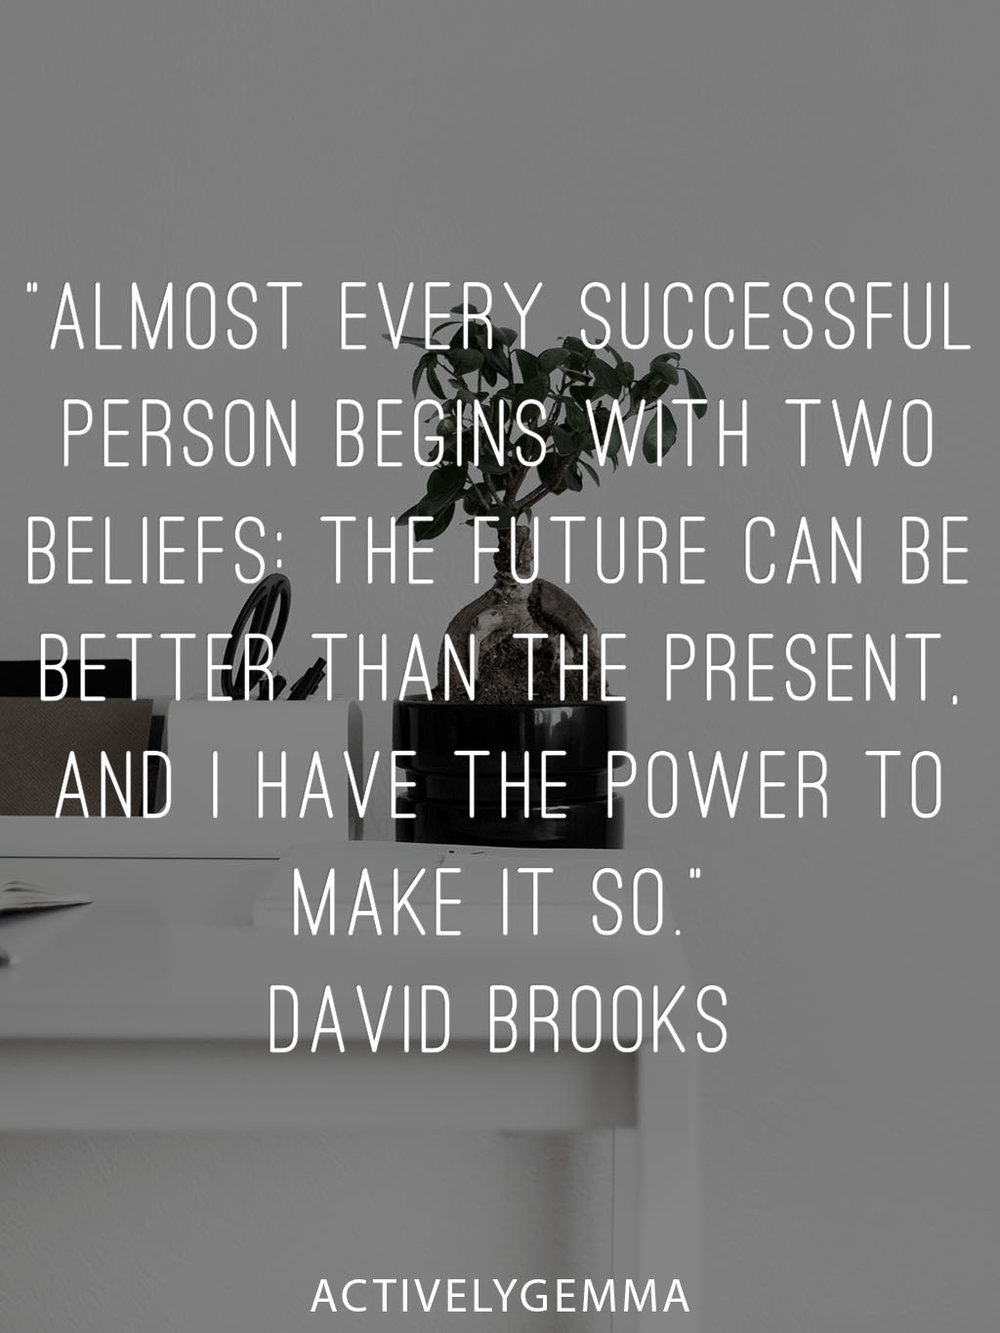 motivation monday - david brooks quote